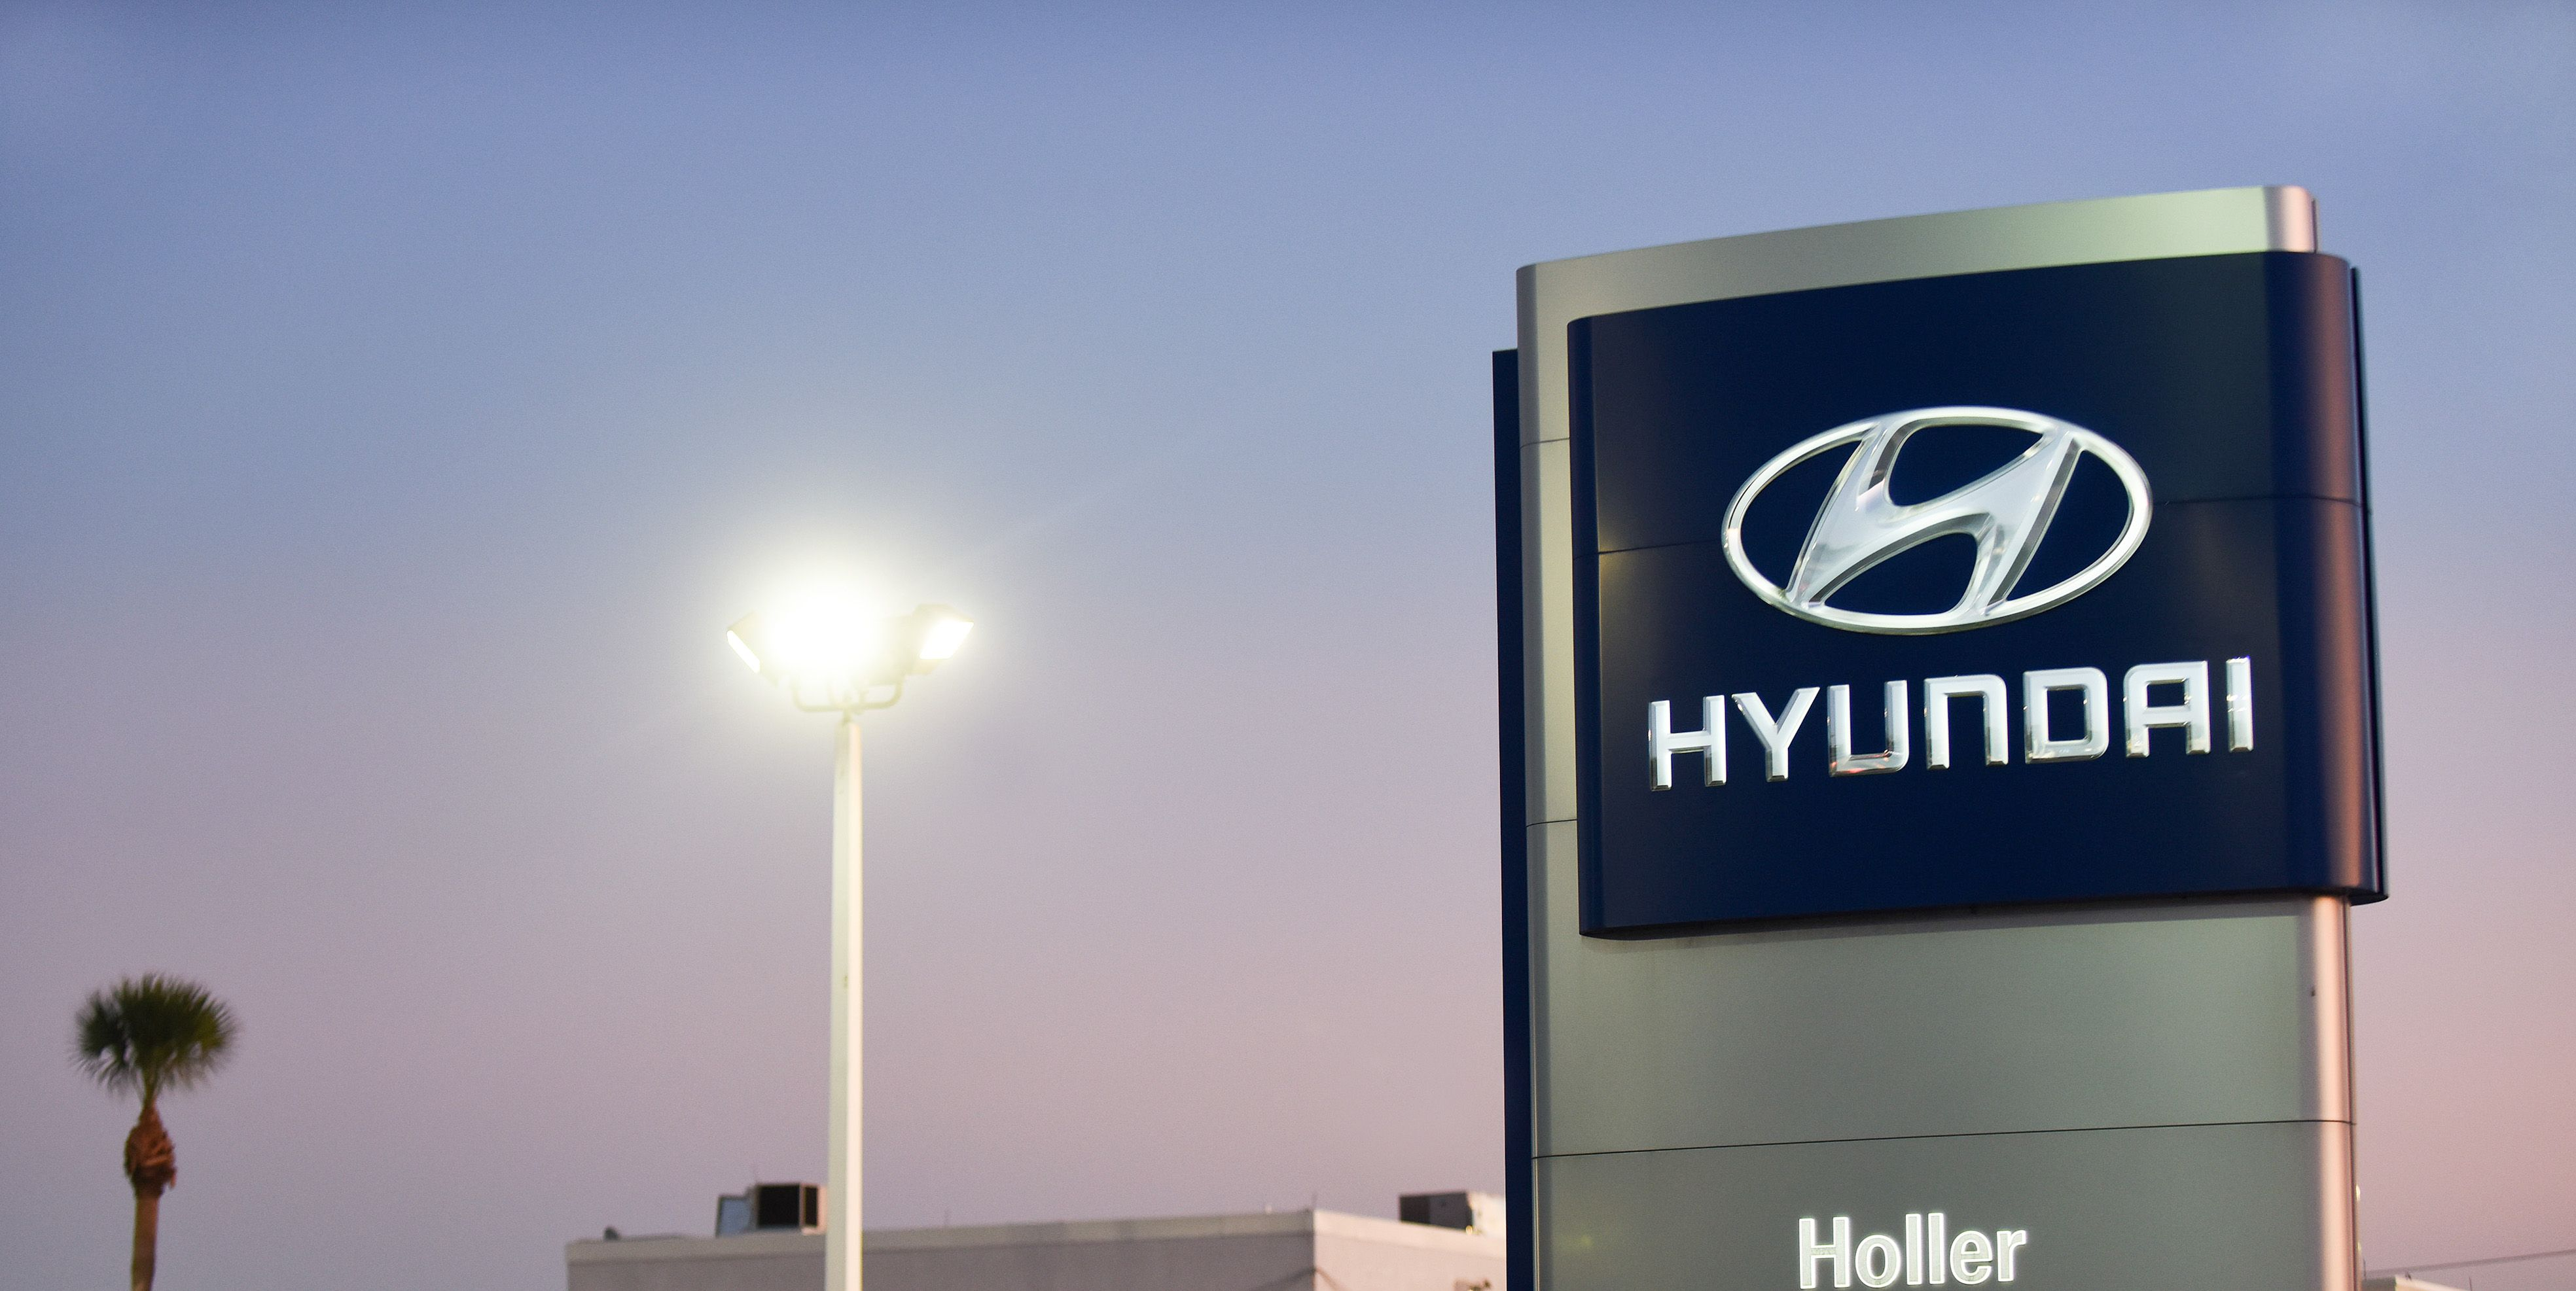 Hyundai Extends Warranty Coverage, Adds Free Maintenance